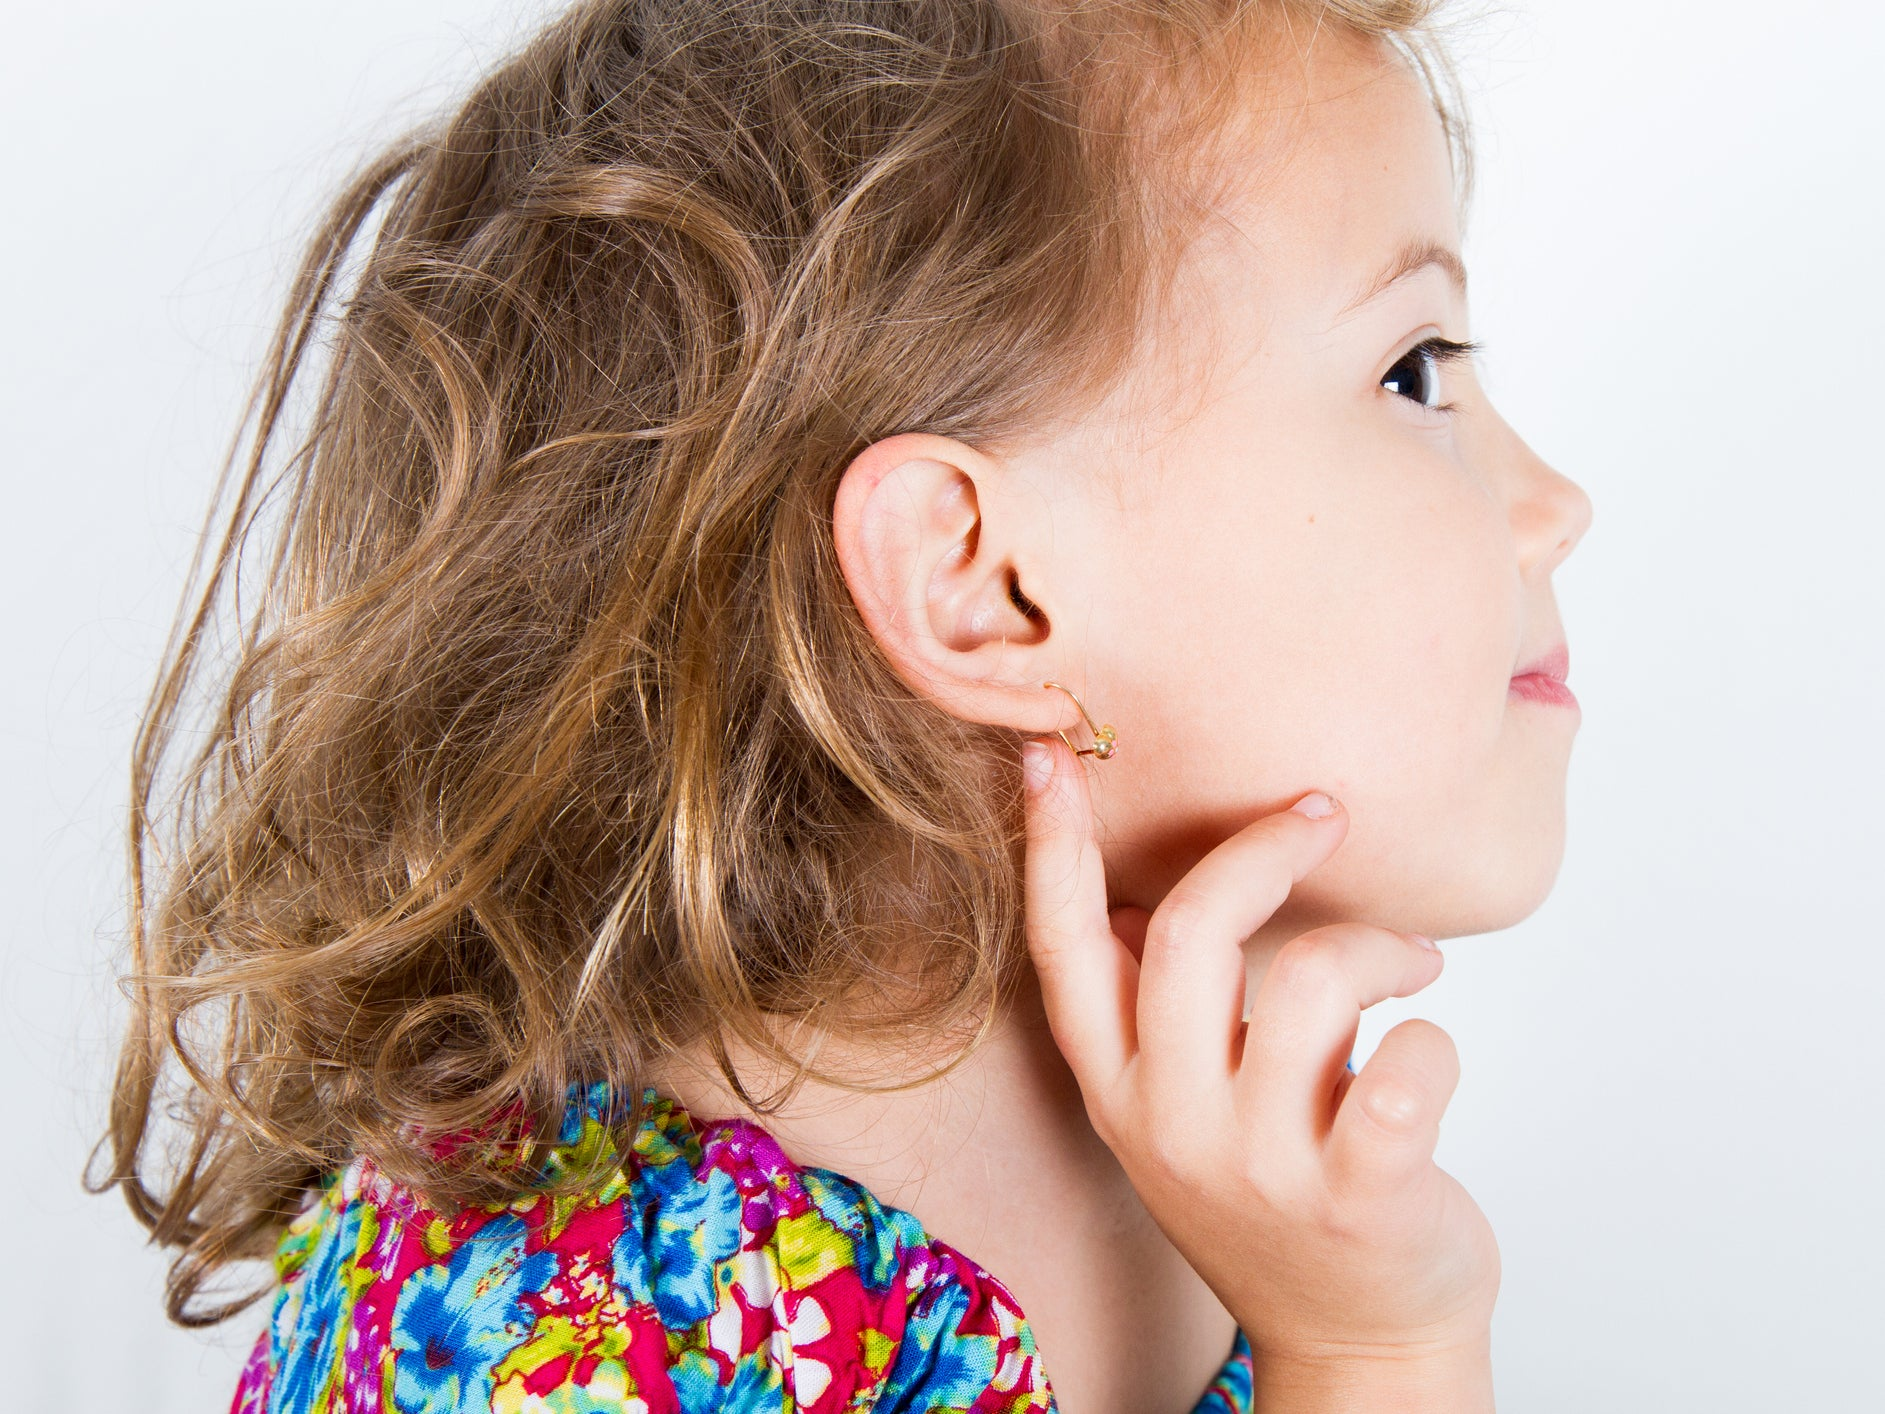 Former Claire S Employee Says Store S Ear Piercing Policy Is A Cruel Practice That Pressures Children The Independent The Independent